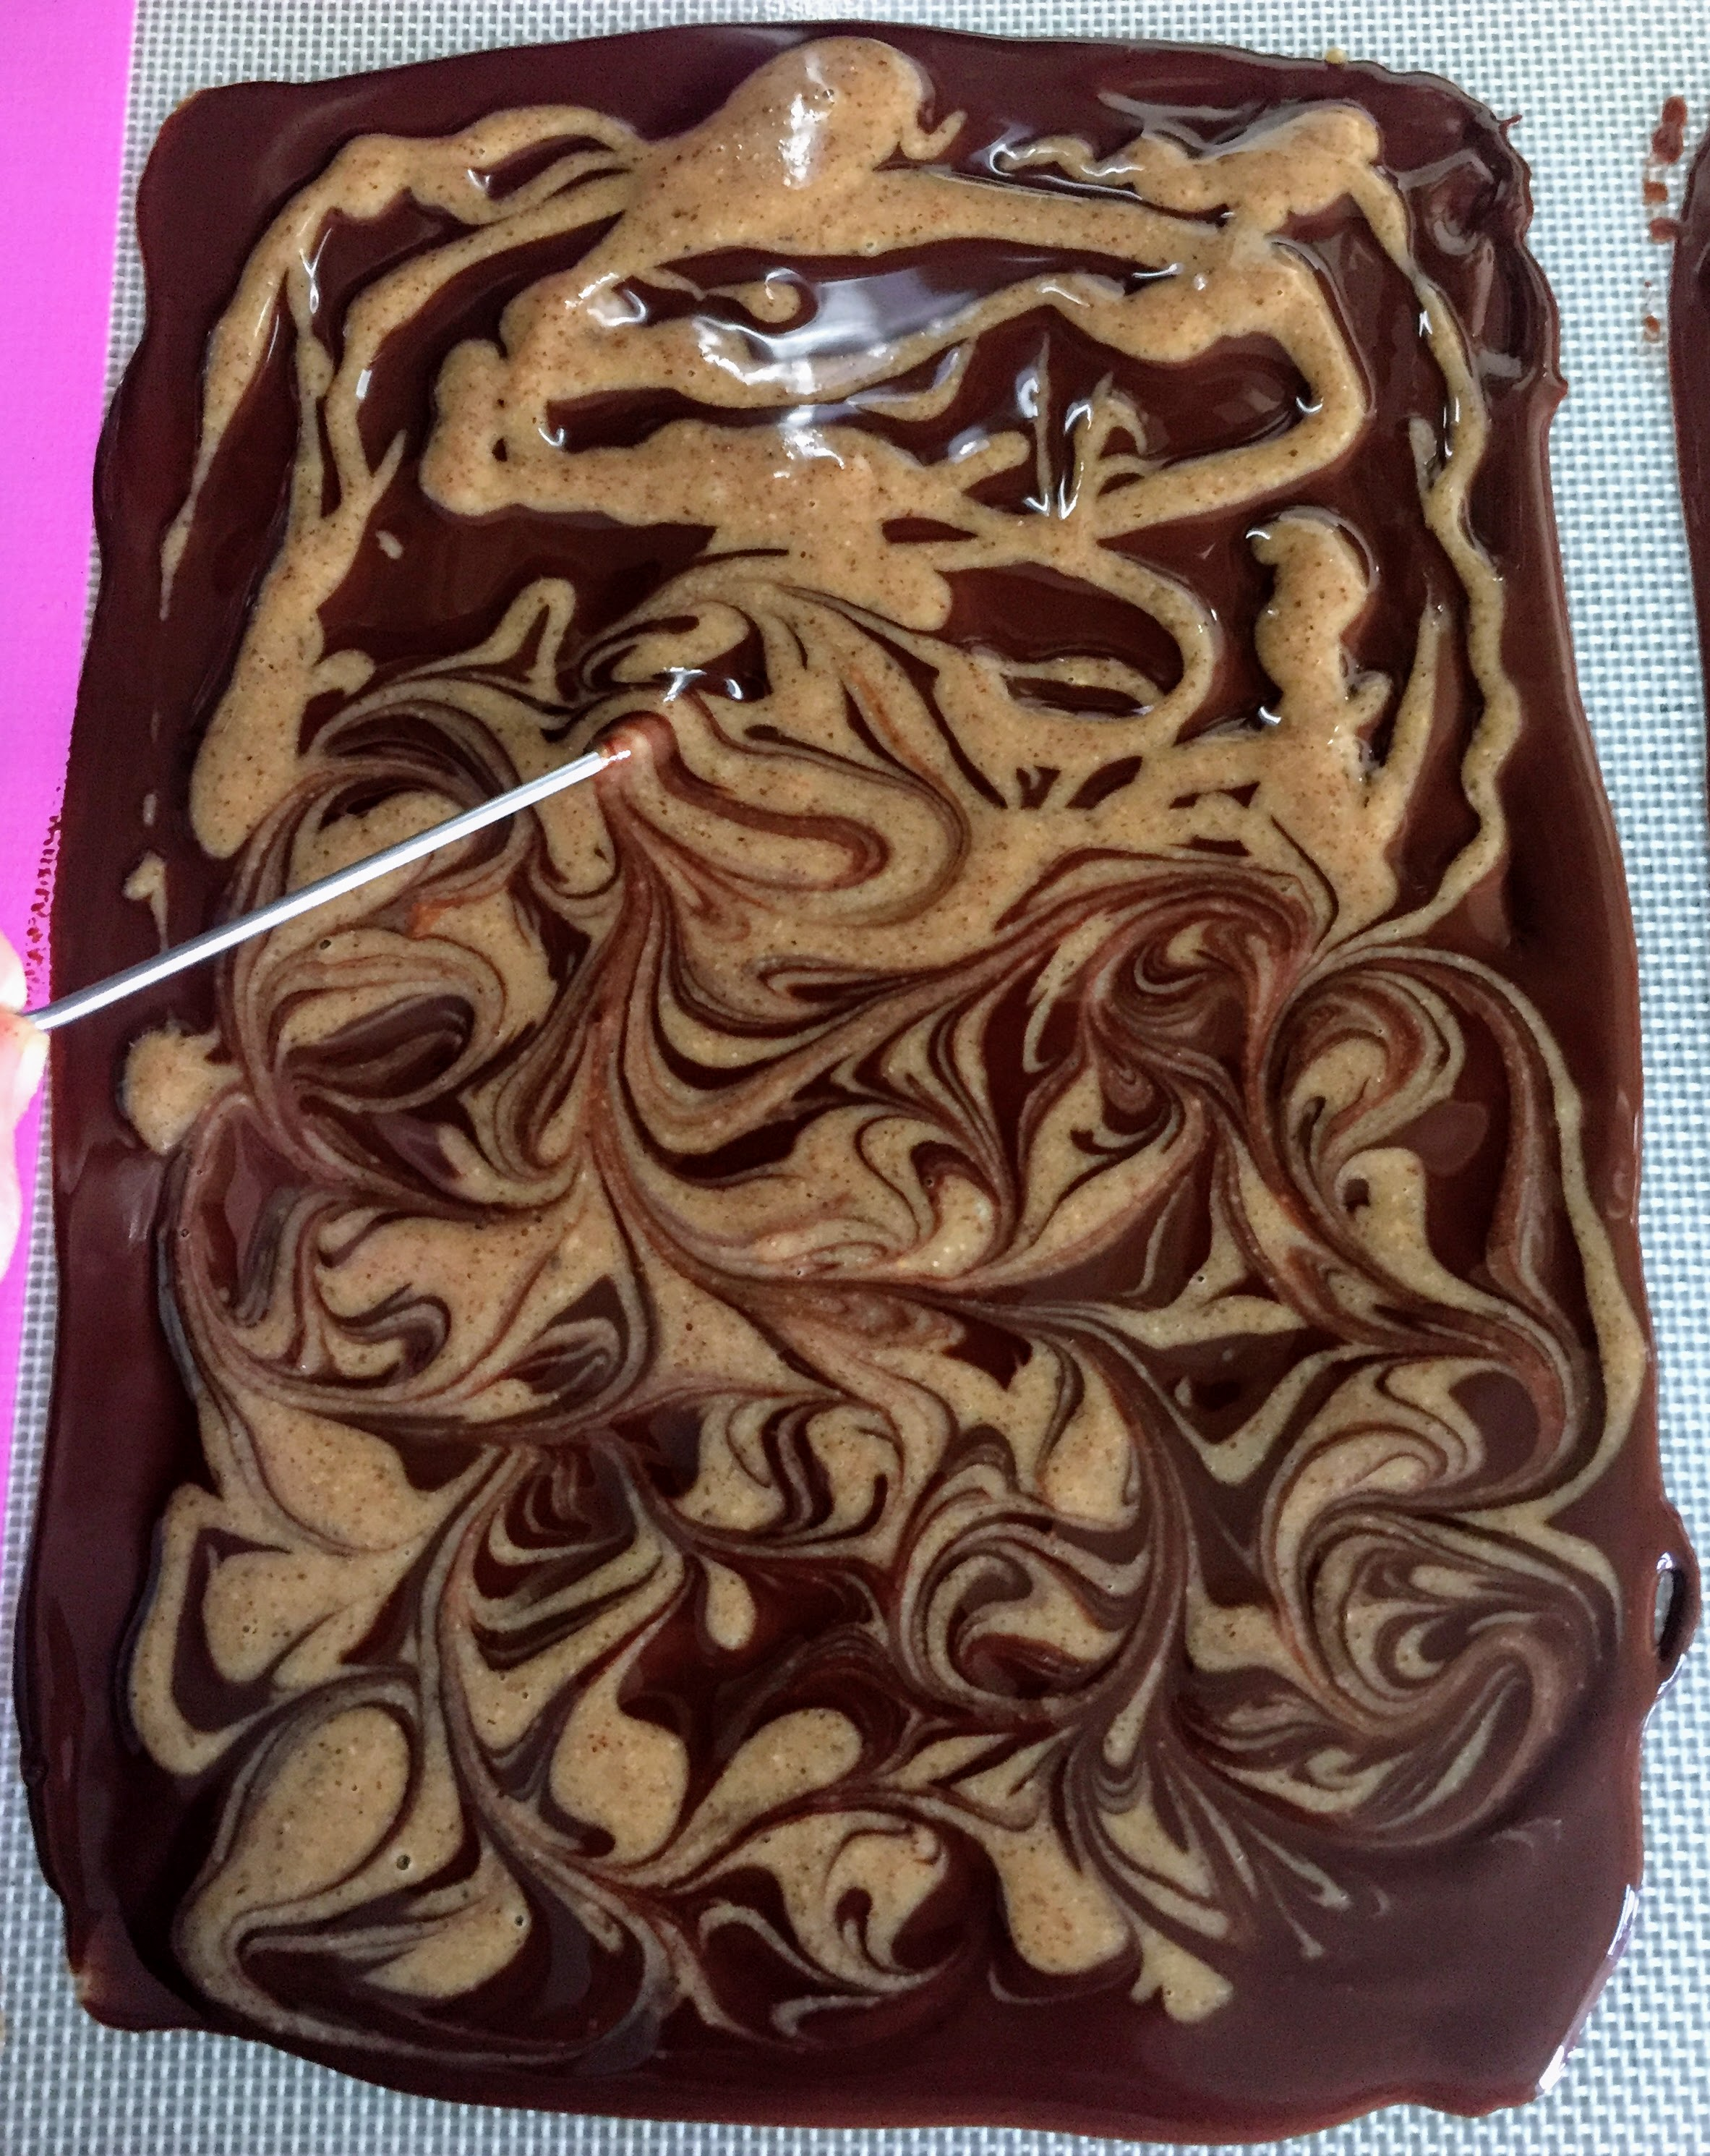 A rectangle of melted dark chocolate, spread on a baking tray and drizzled with almond butter mixture. The top half shows the almond butter roughly drizzled, and the bottom half shows the marbled effect when a skewer is run through the chocolate and almond mixture.